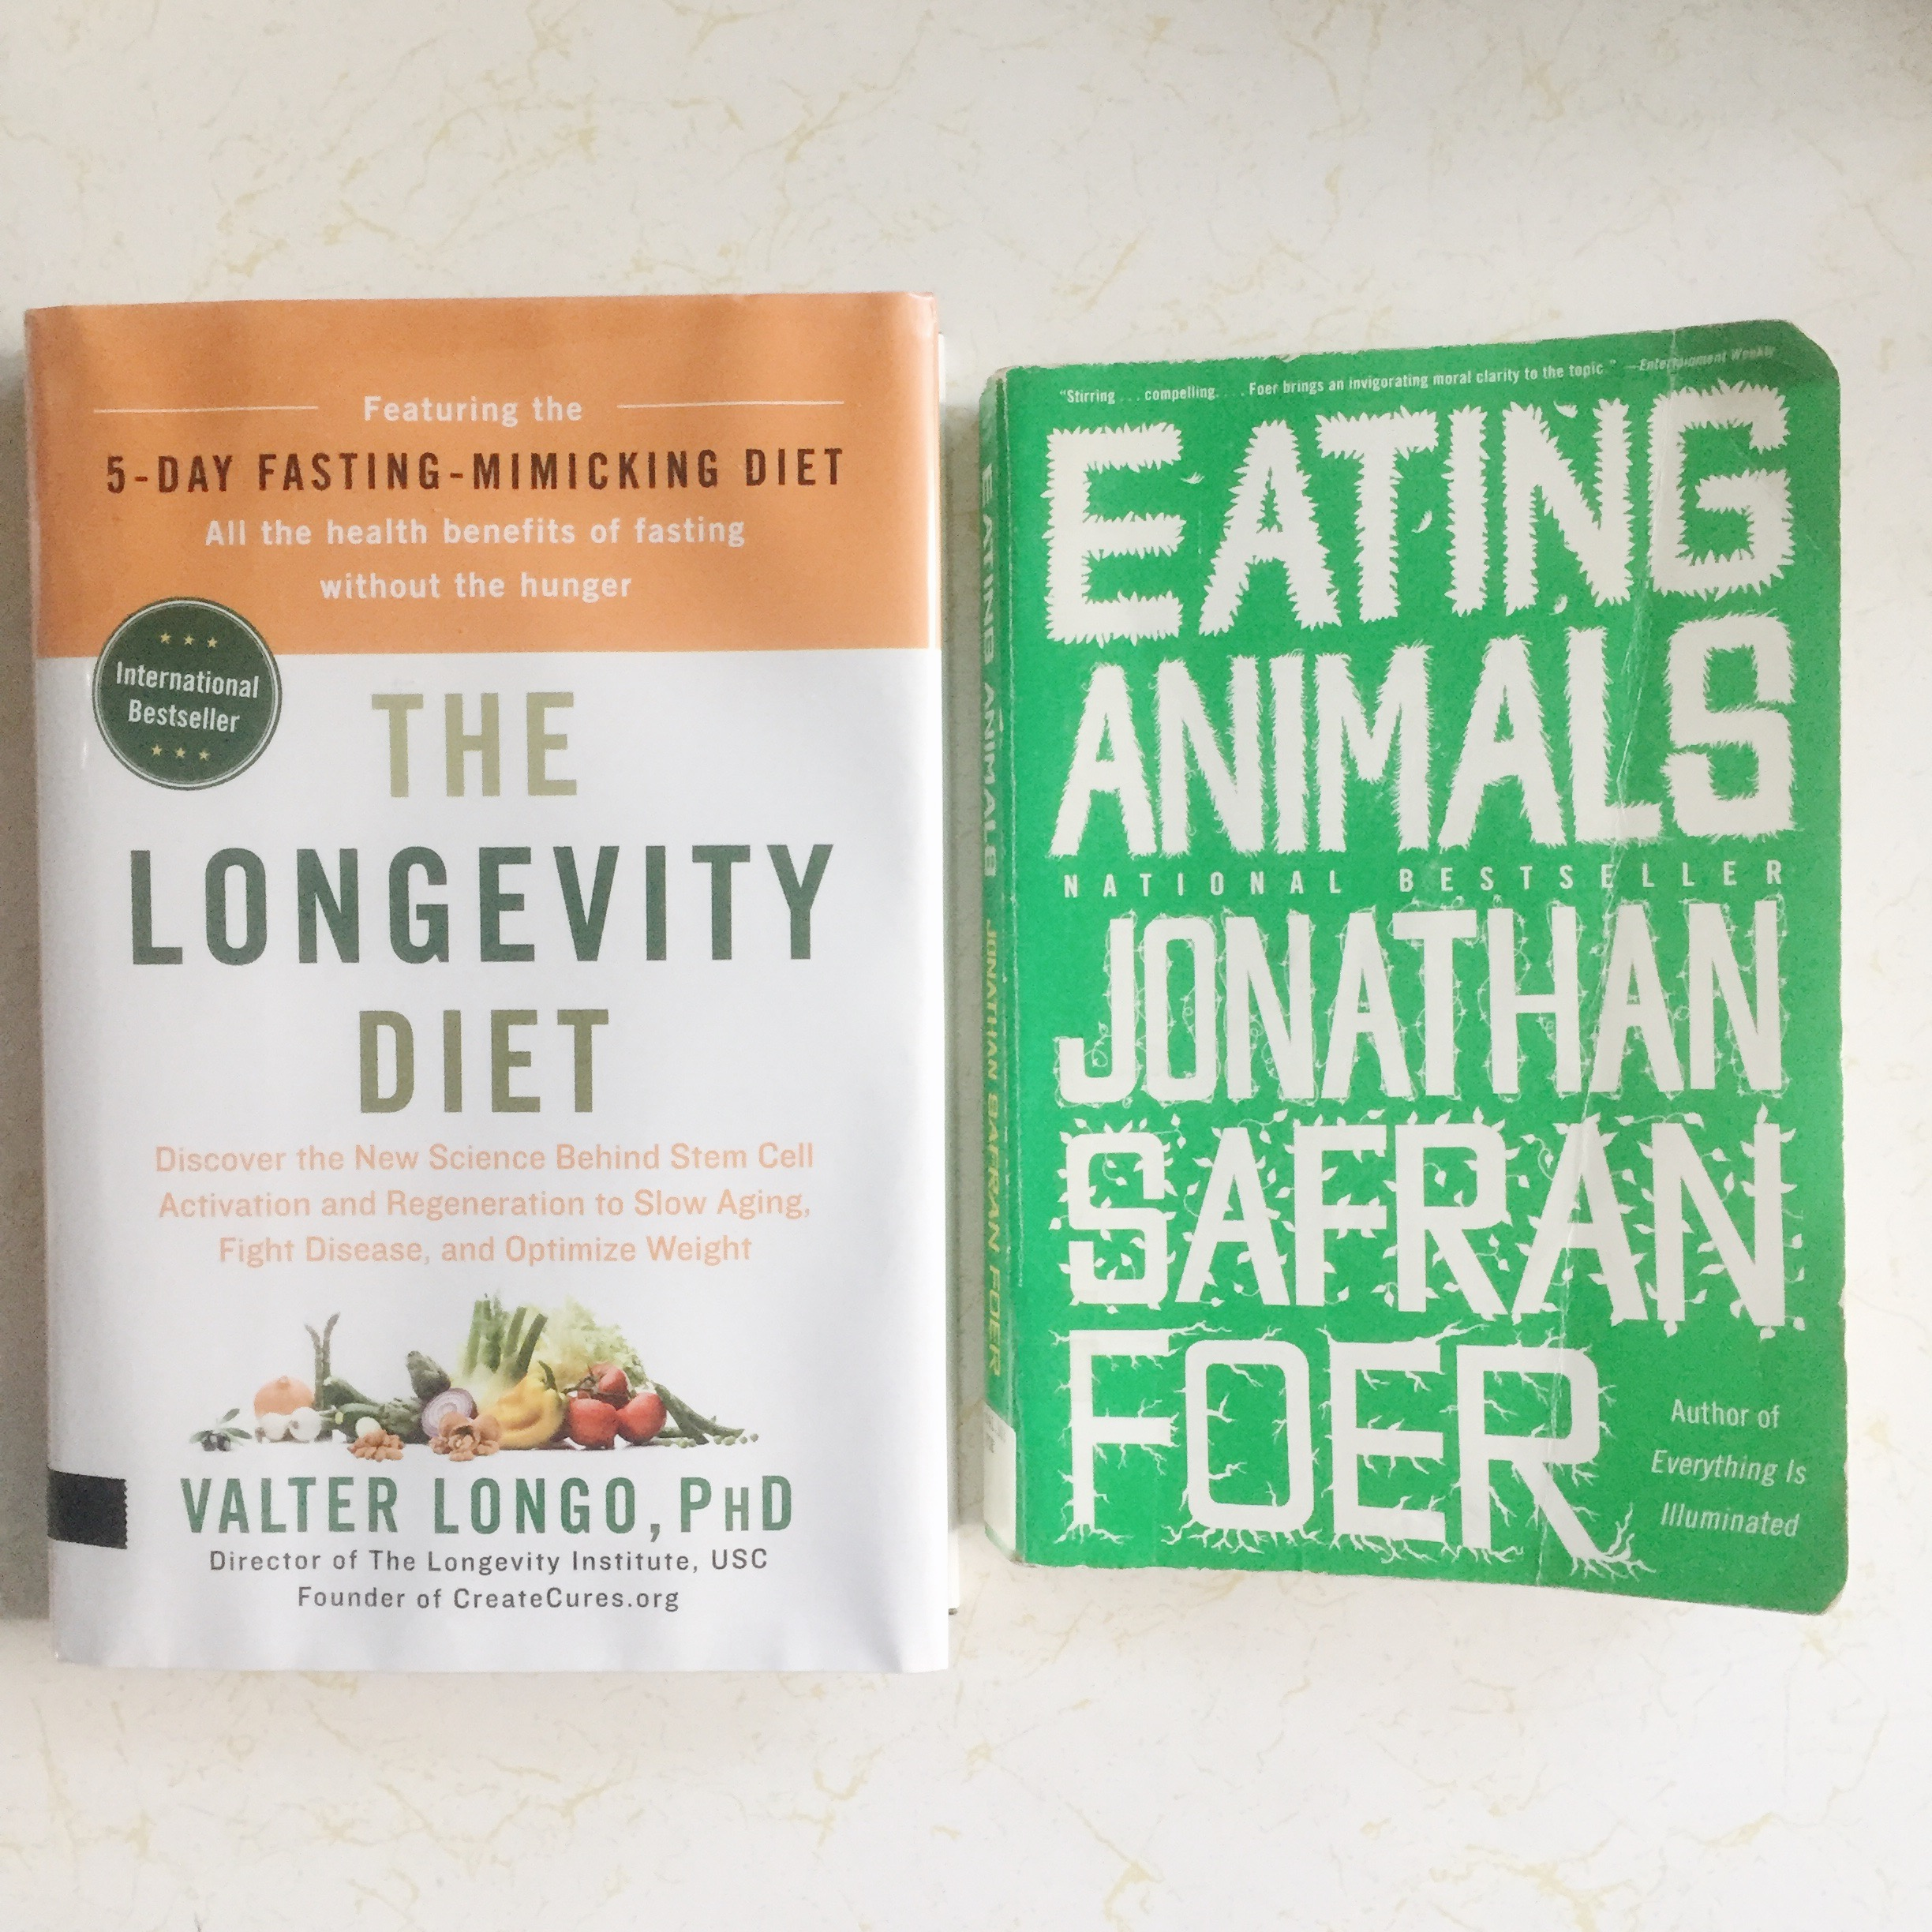 Two books that changed my perspective in eating animals. I'm not vegan and probably never will but these were very insightful to read and will change how I eat in the years to come.